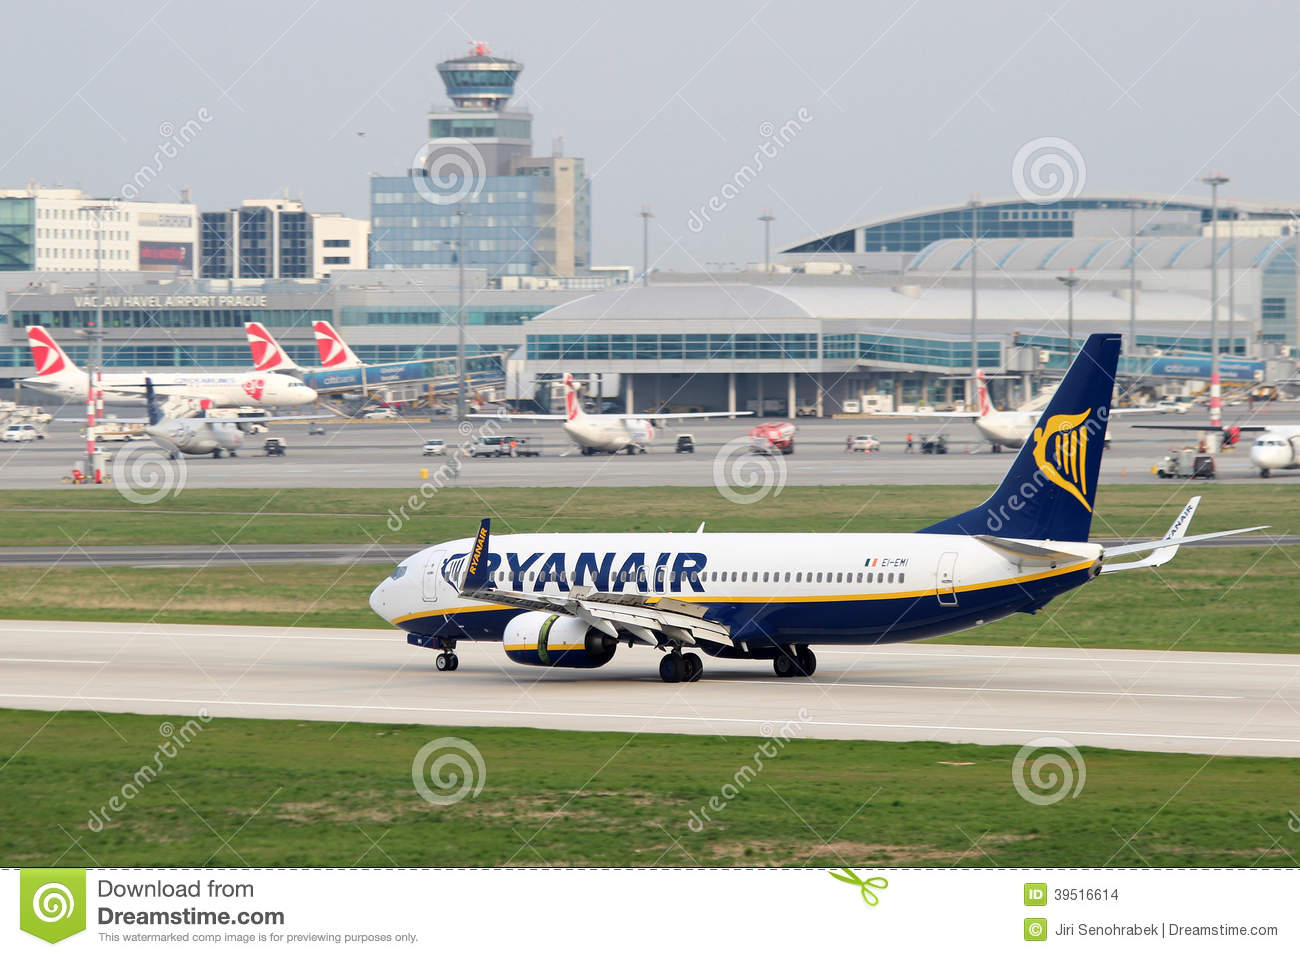 Business Report on Ryan Air